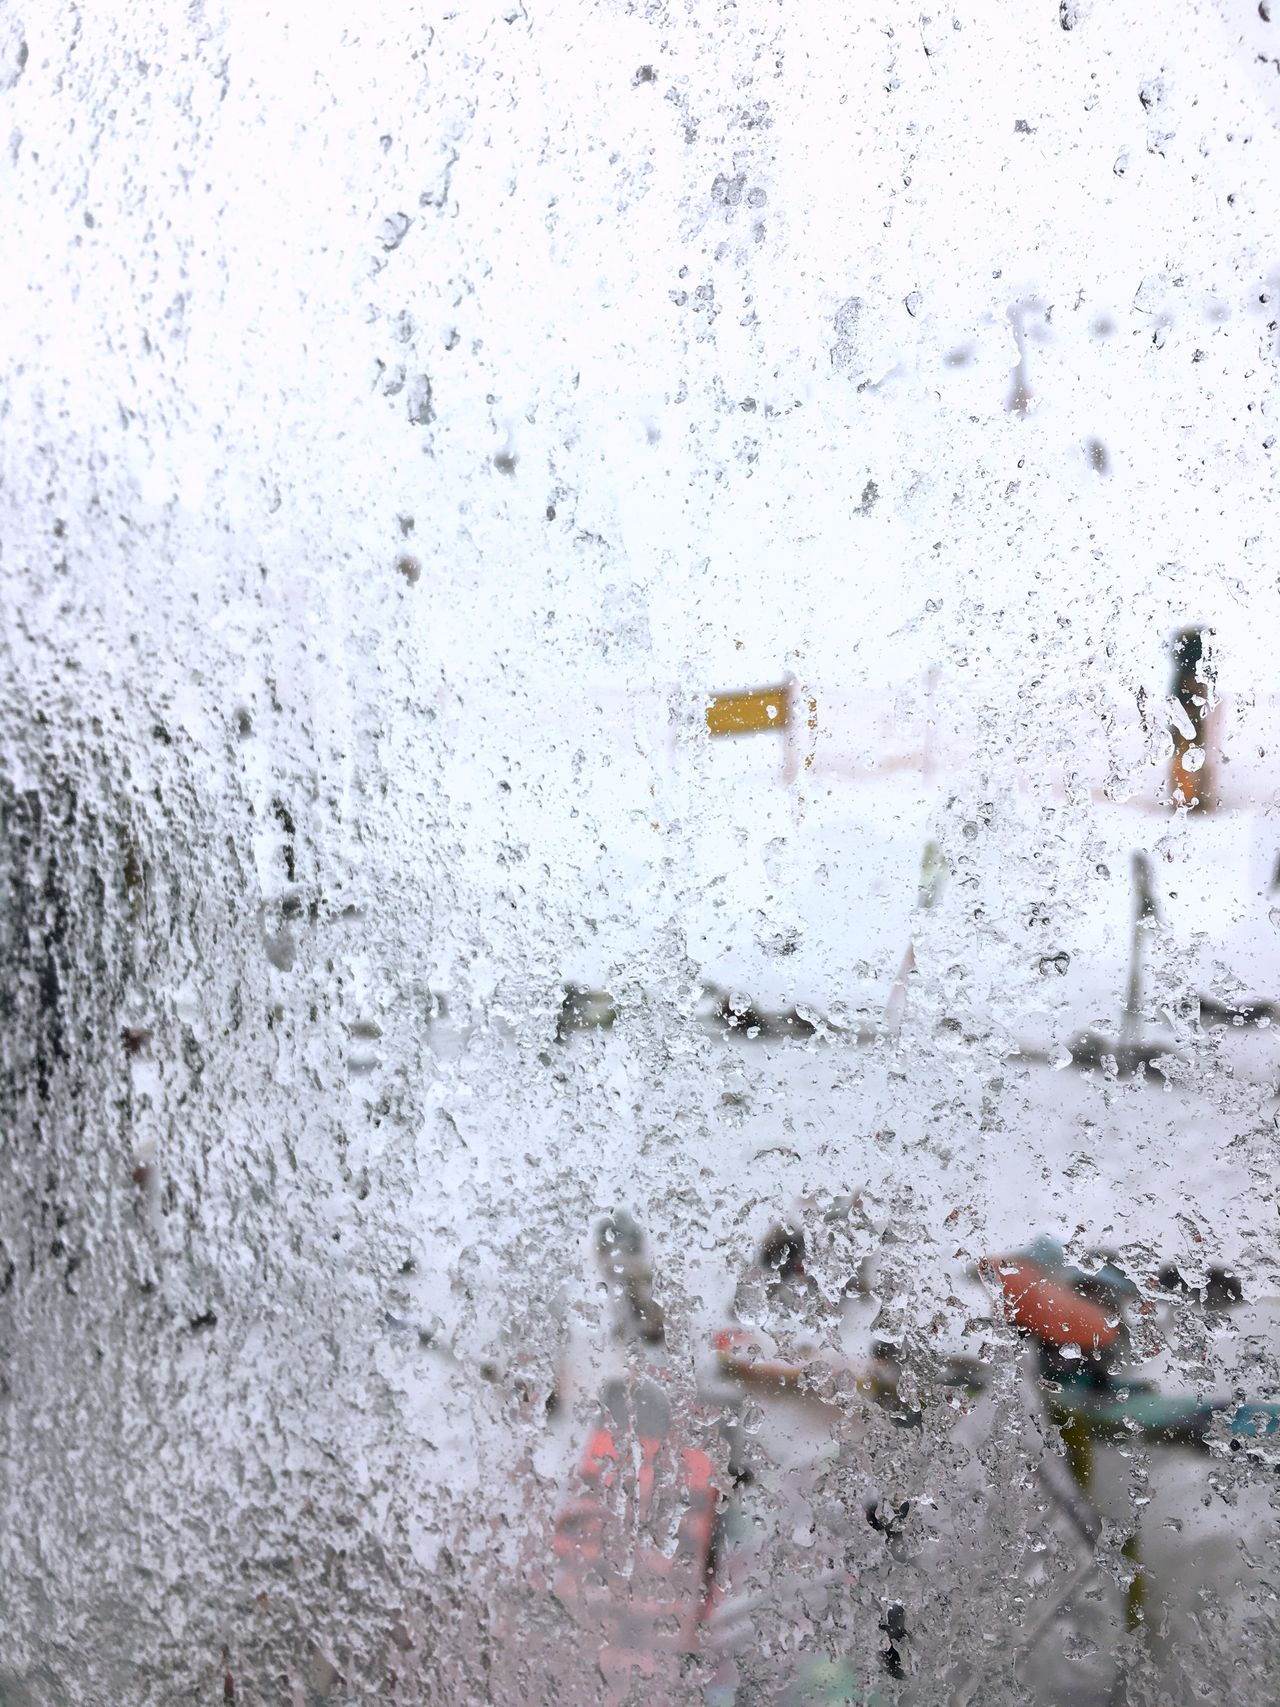 Blizzard Icy Window From My Window Bariloche Catedral Snow Weather Cold Cold Temperature Ice Winter El Cabo